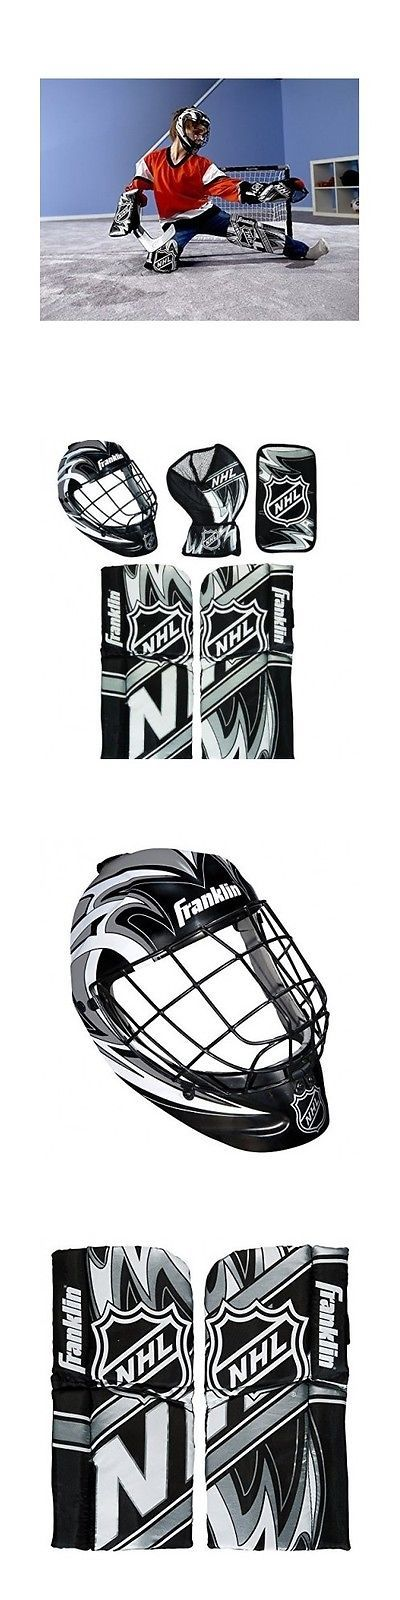 Other Hockey Goalie Equipment 79765: Hockey Goalie Equipment Field Training Knee Kids Mini Youth Protective Gear New BUY IT NOW ONLY: $54.99